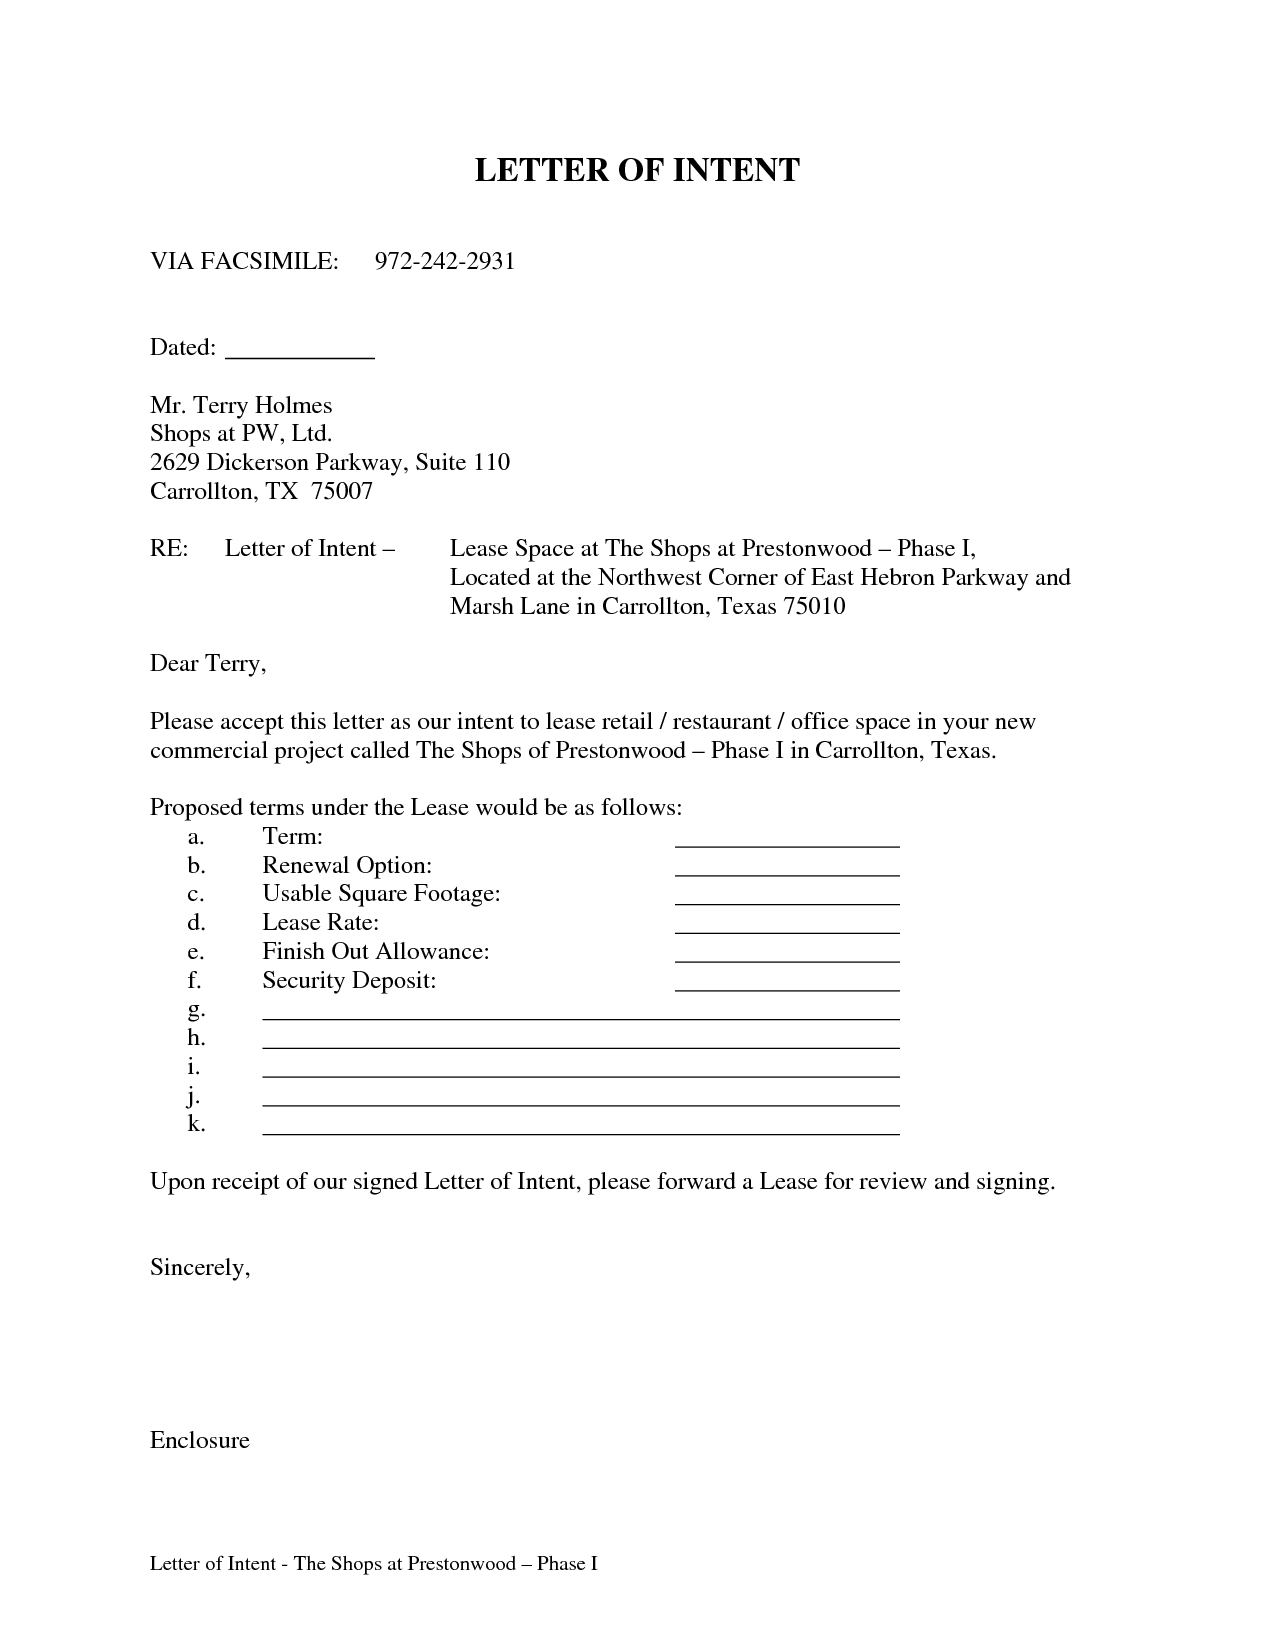 Letter Of Intent to Lease Commercial Property Template - Letter Intent for Mercial Lease Sample Real Estate Purchase